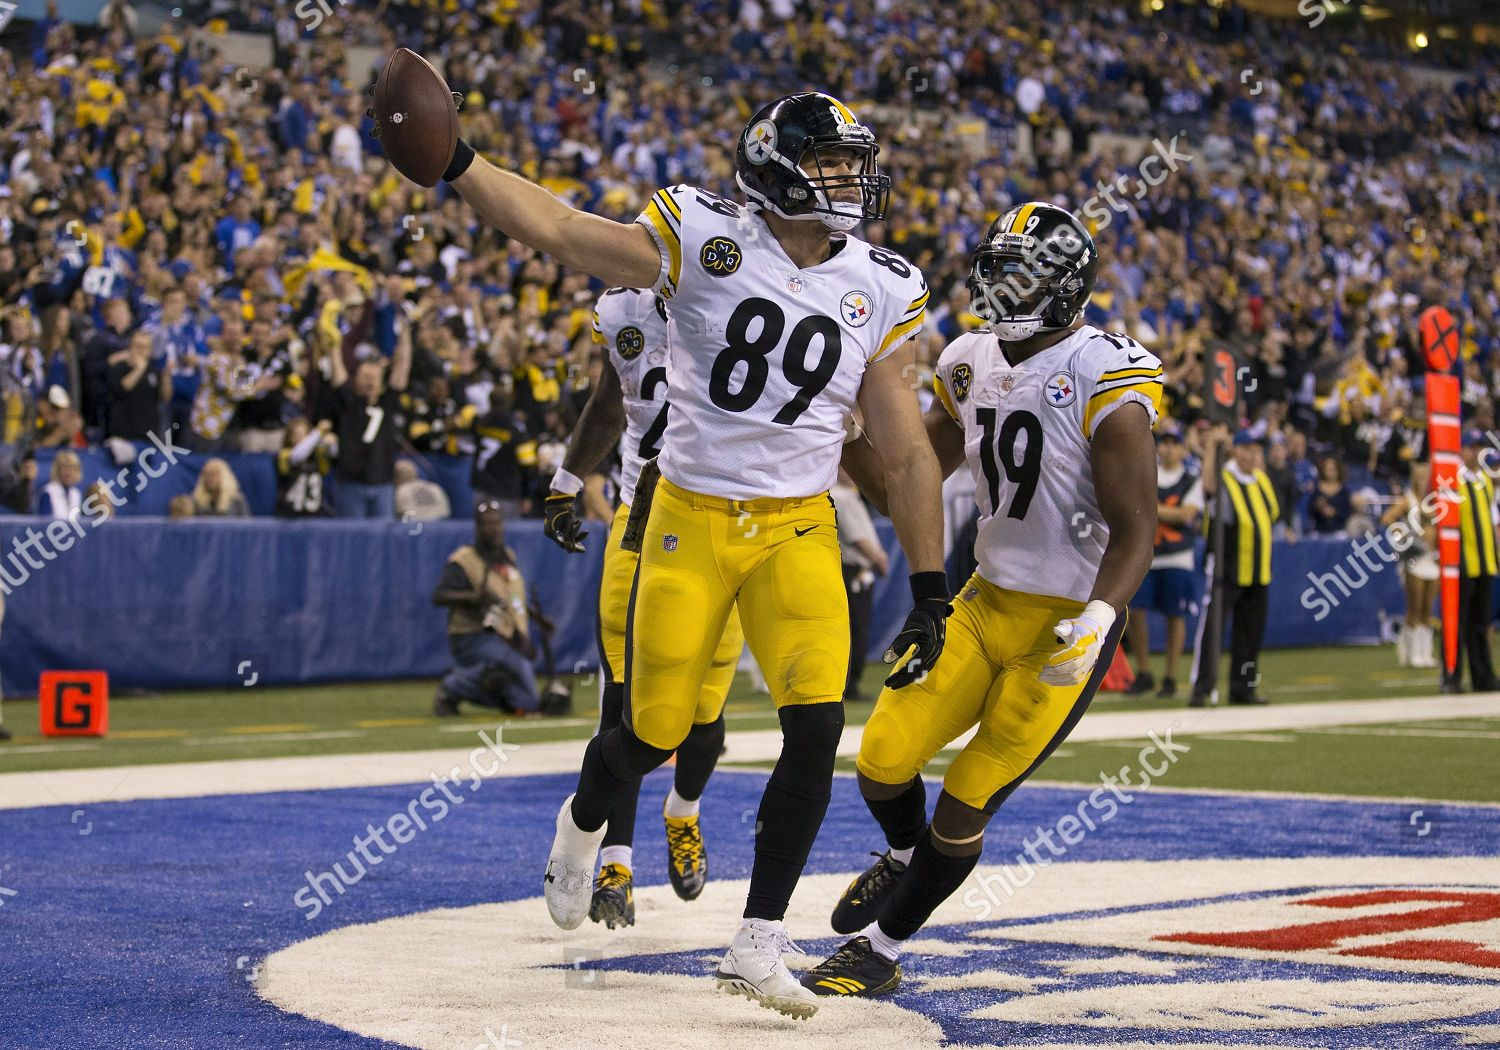 a8d4e292c NFL Steelers vs Colts, USA Stock Image by John Mersits for editorial use,  Nov 12, 2017